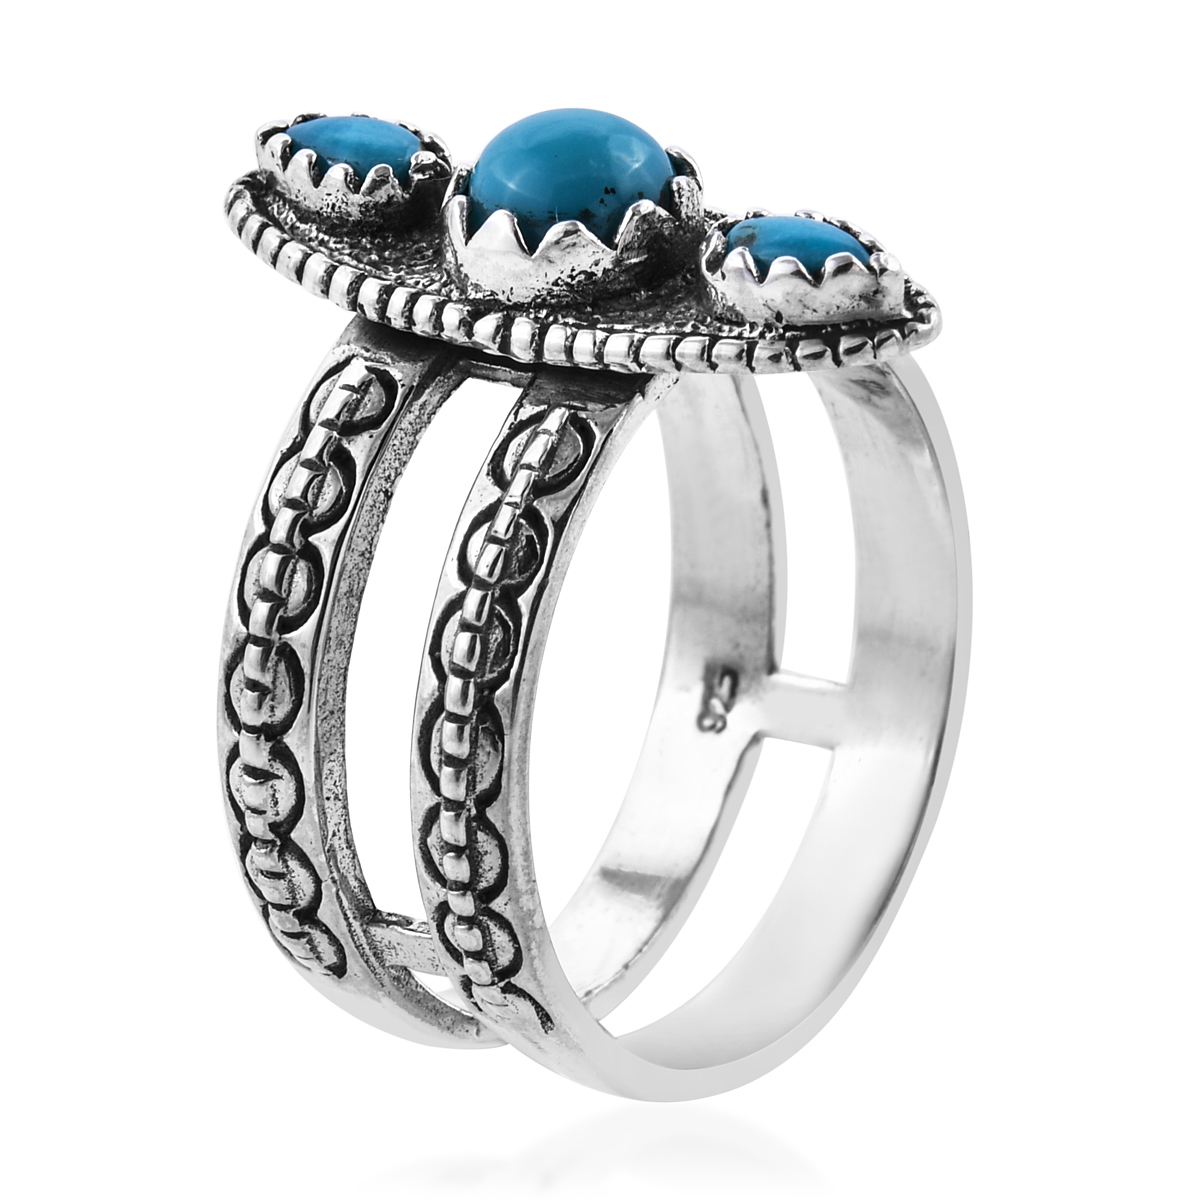 8ee6a9f355bdd5 ... Bali Legacy Collection Arizona Sleeping Beauty Turquoise Sterling  Silver Split Band Ring (Size 9.0) ...